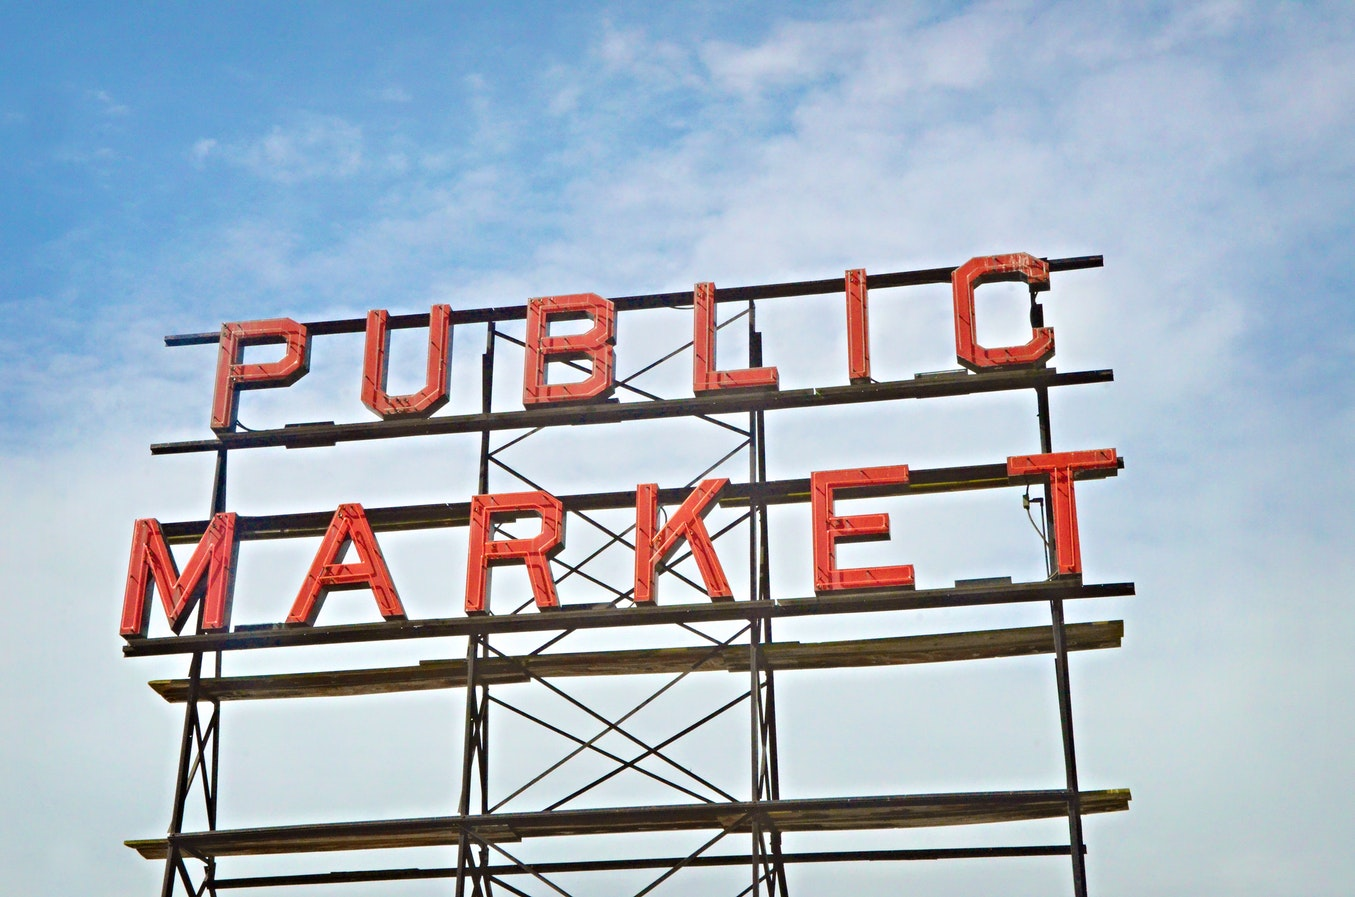 coming to kickstarter 2020 - Public Market by Flatout Games is coming to Kickstarter in 2020.